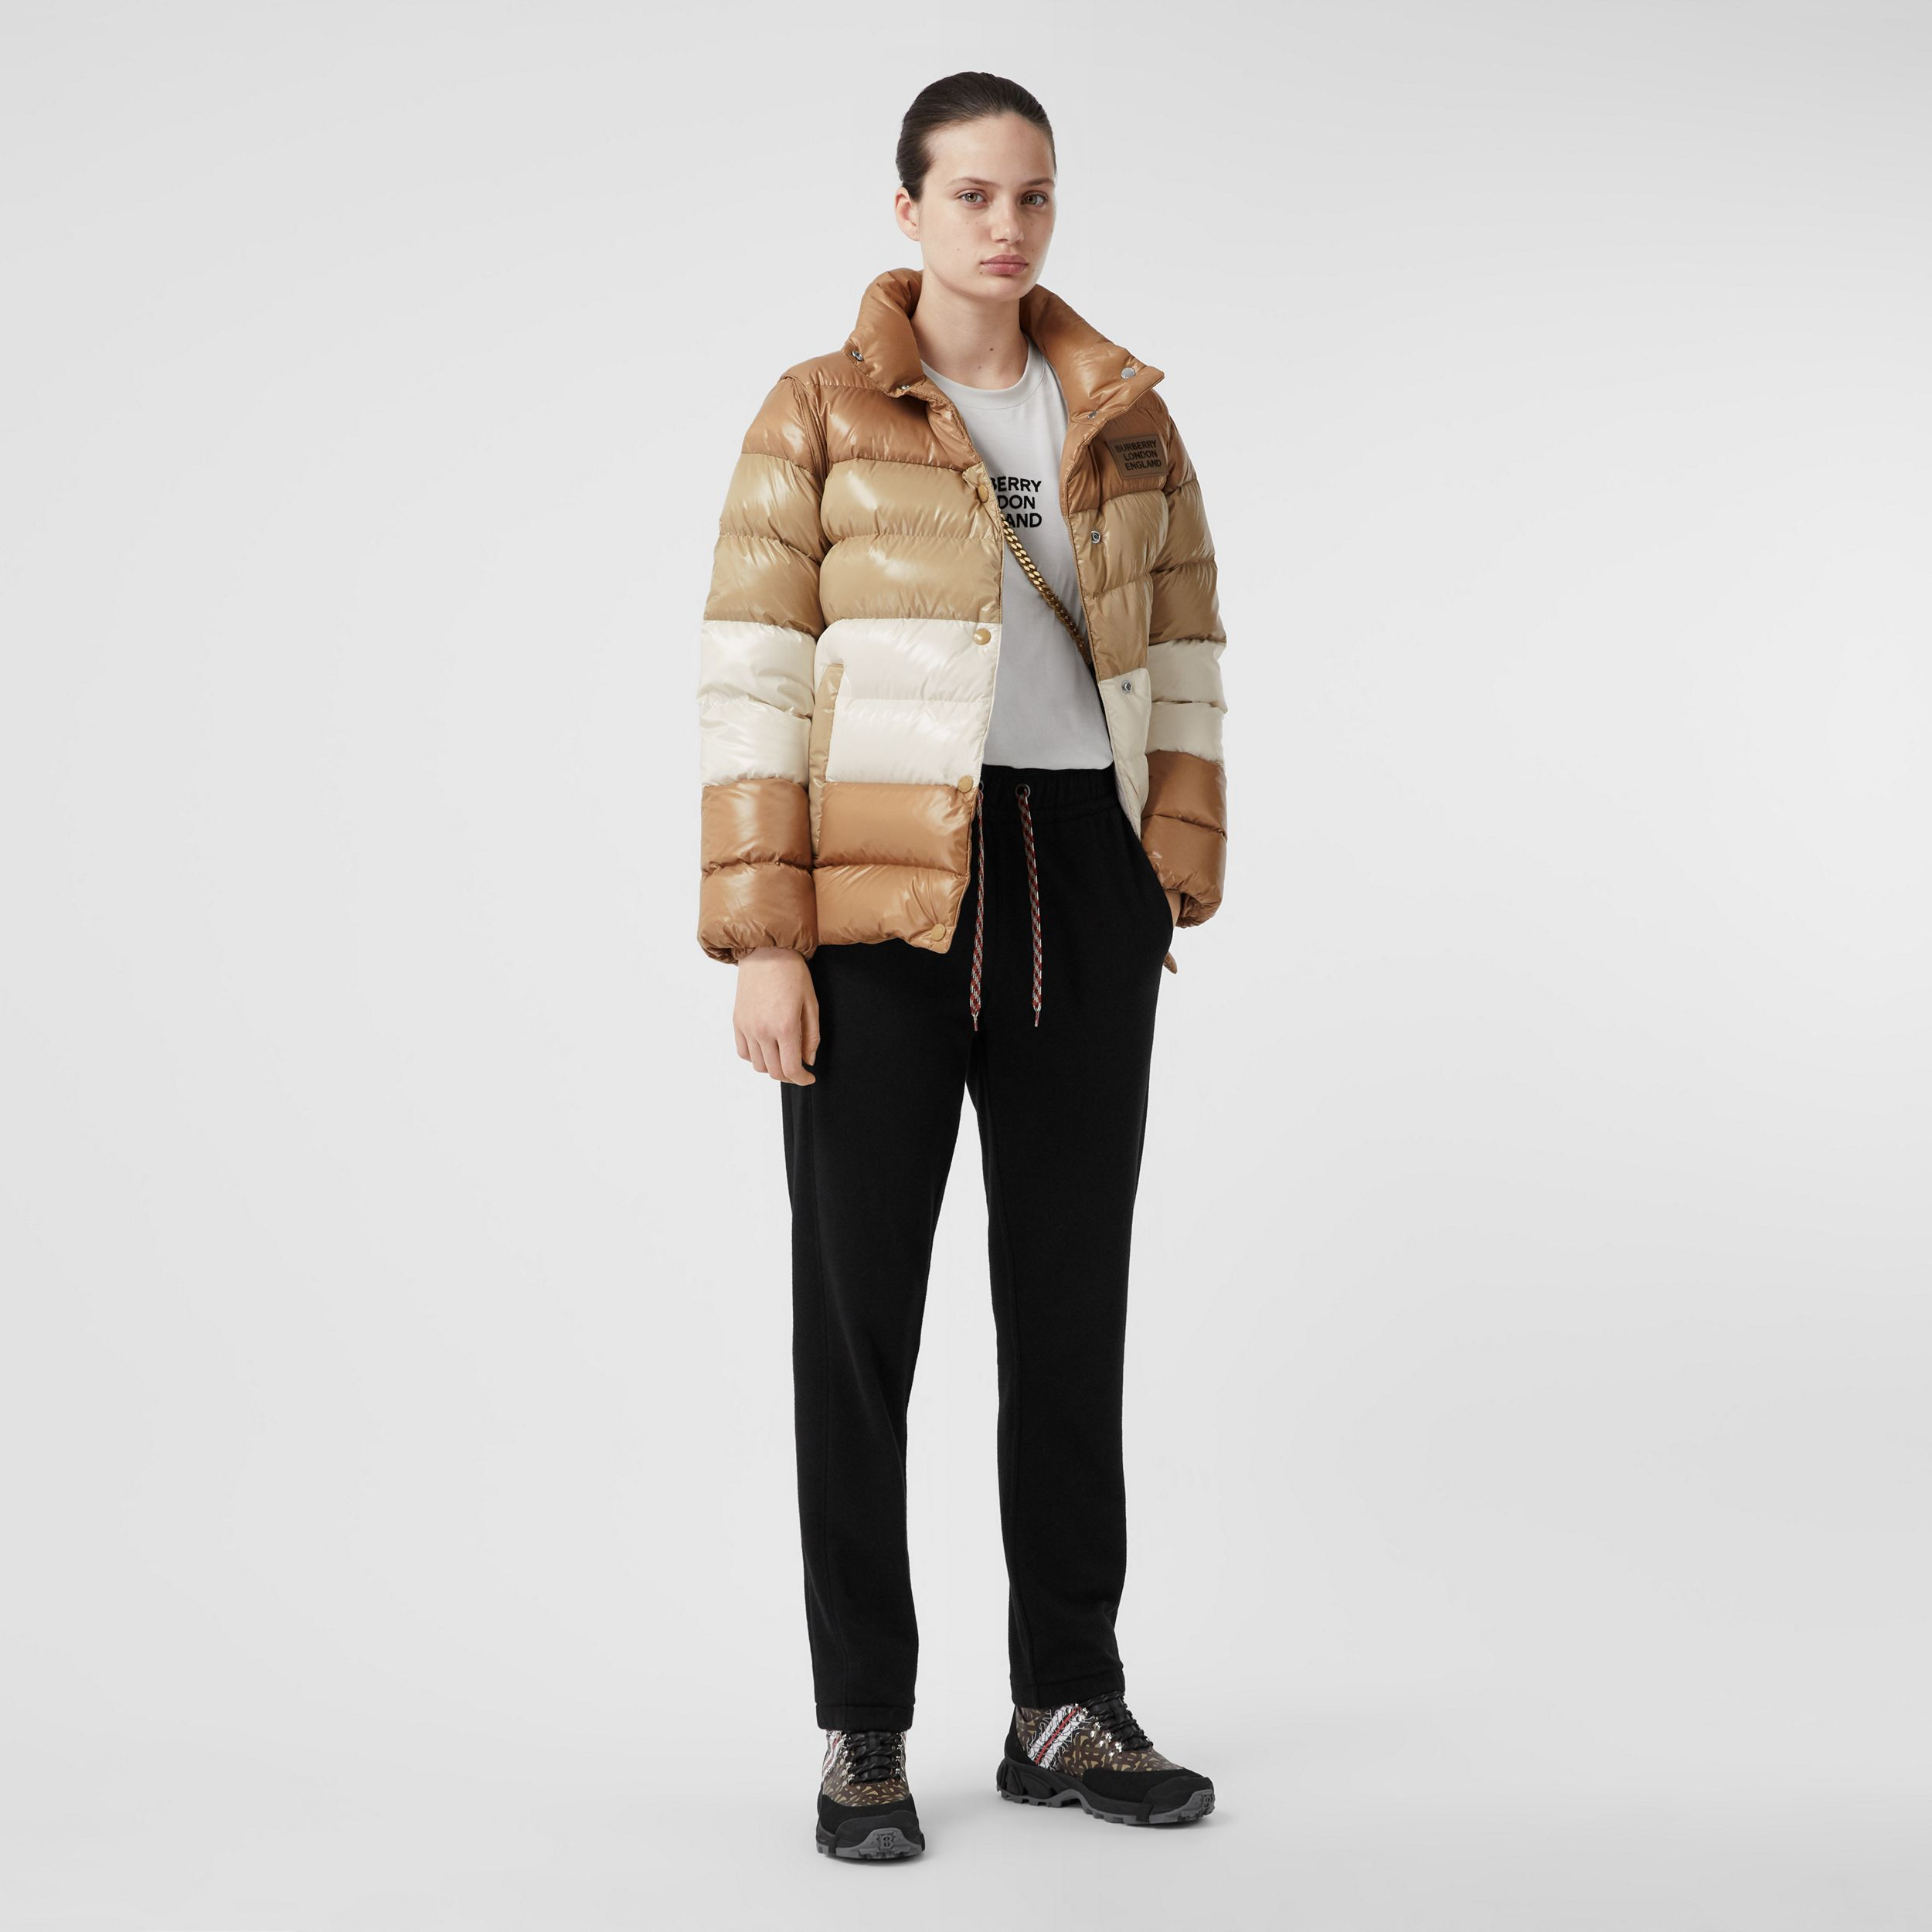 Panelled Nylon Puffer Jacket with Detachable Sleeves in Soft Camel - Women | Burberry - 1